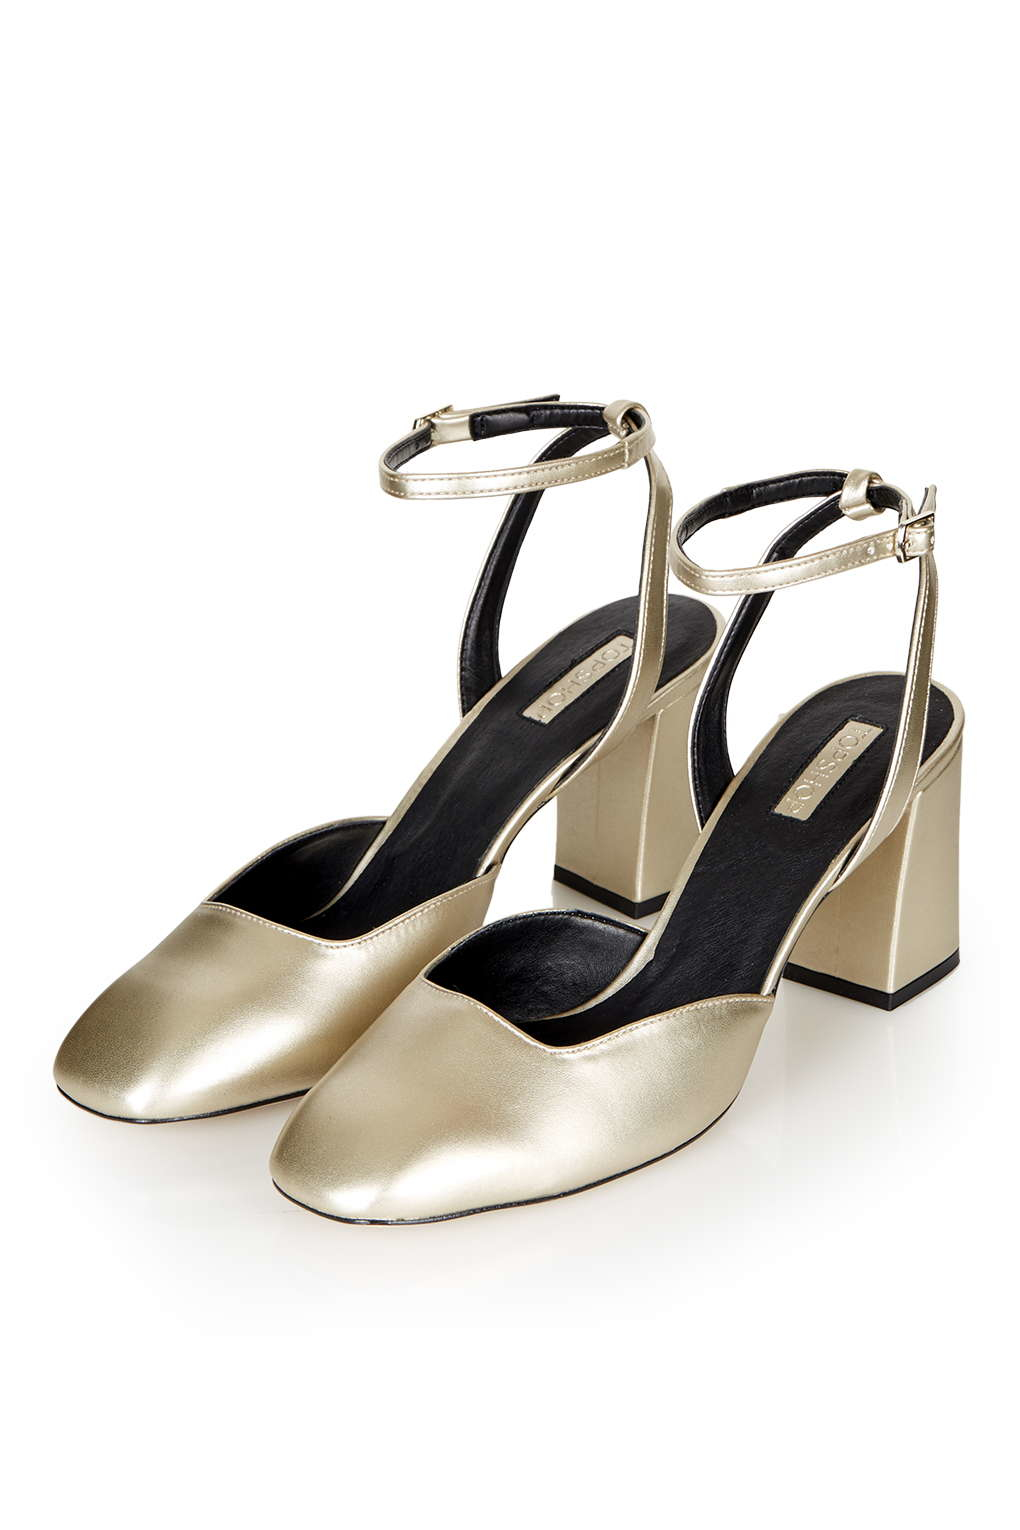 topshop josephine flare heeled leather shoes in metallic